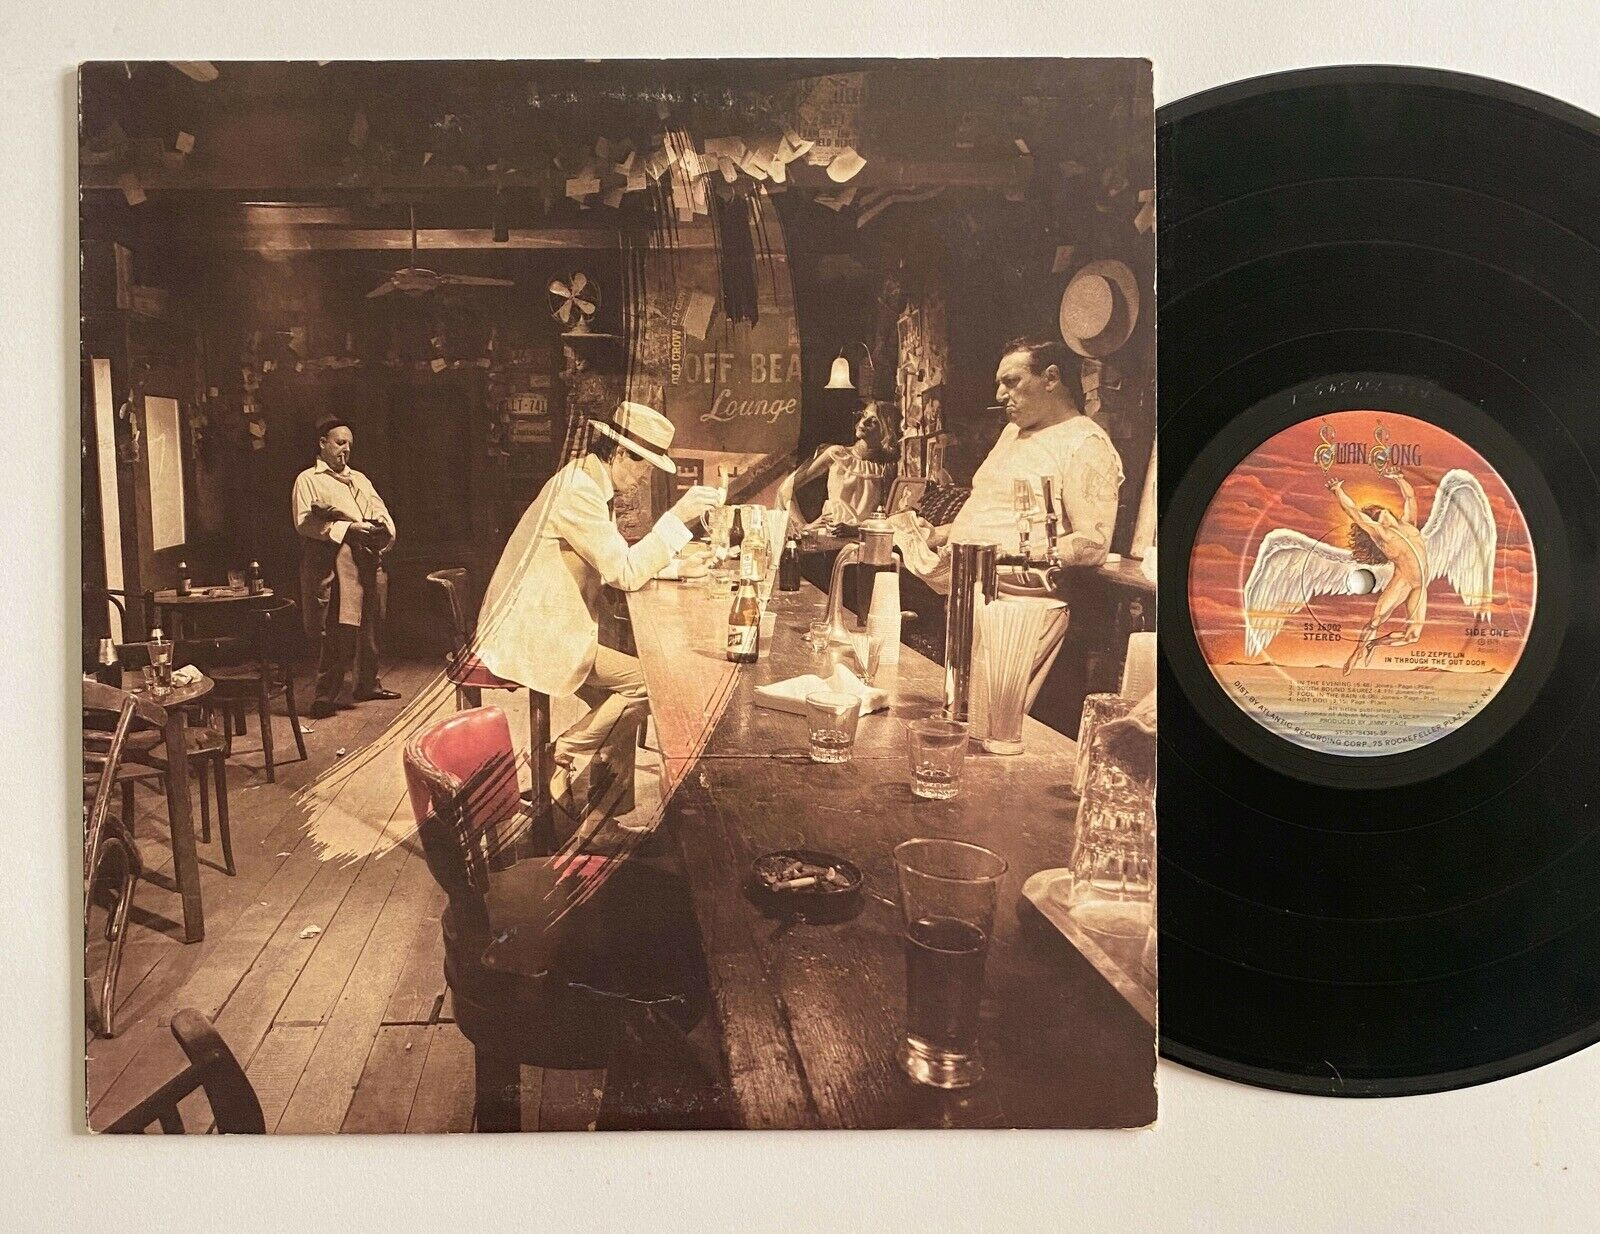 LED ZEPPELIN In Through The Out Door SWAN SONG SS 16002 LP VG+/VG++